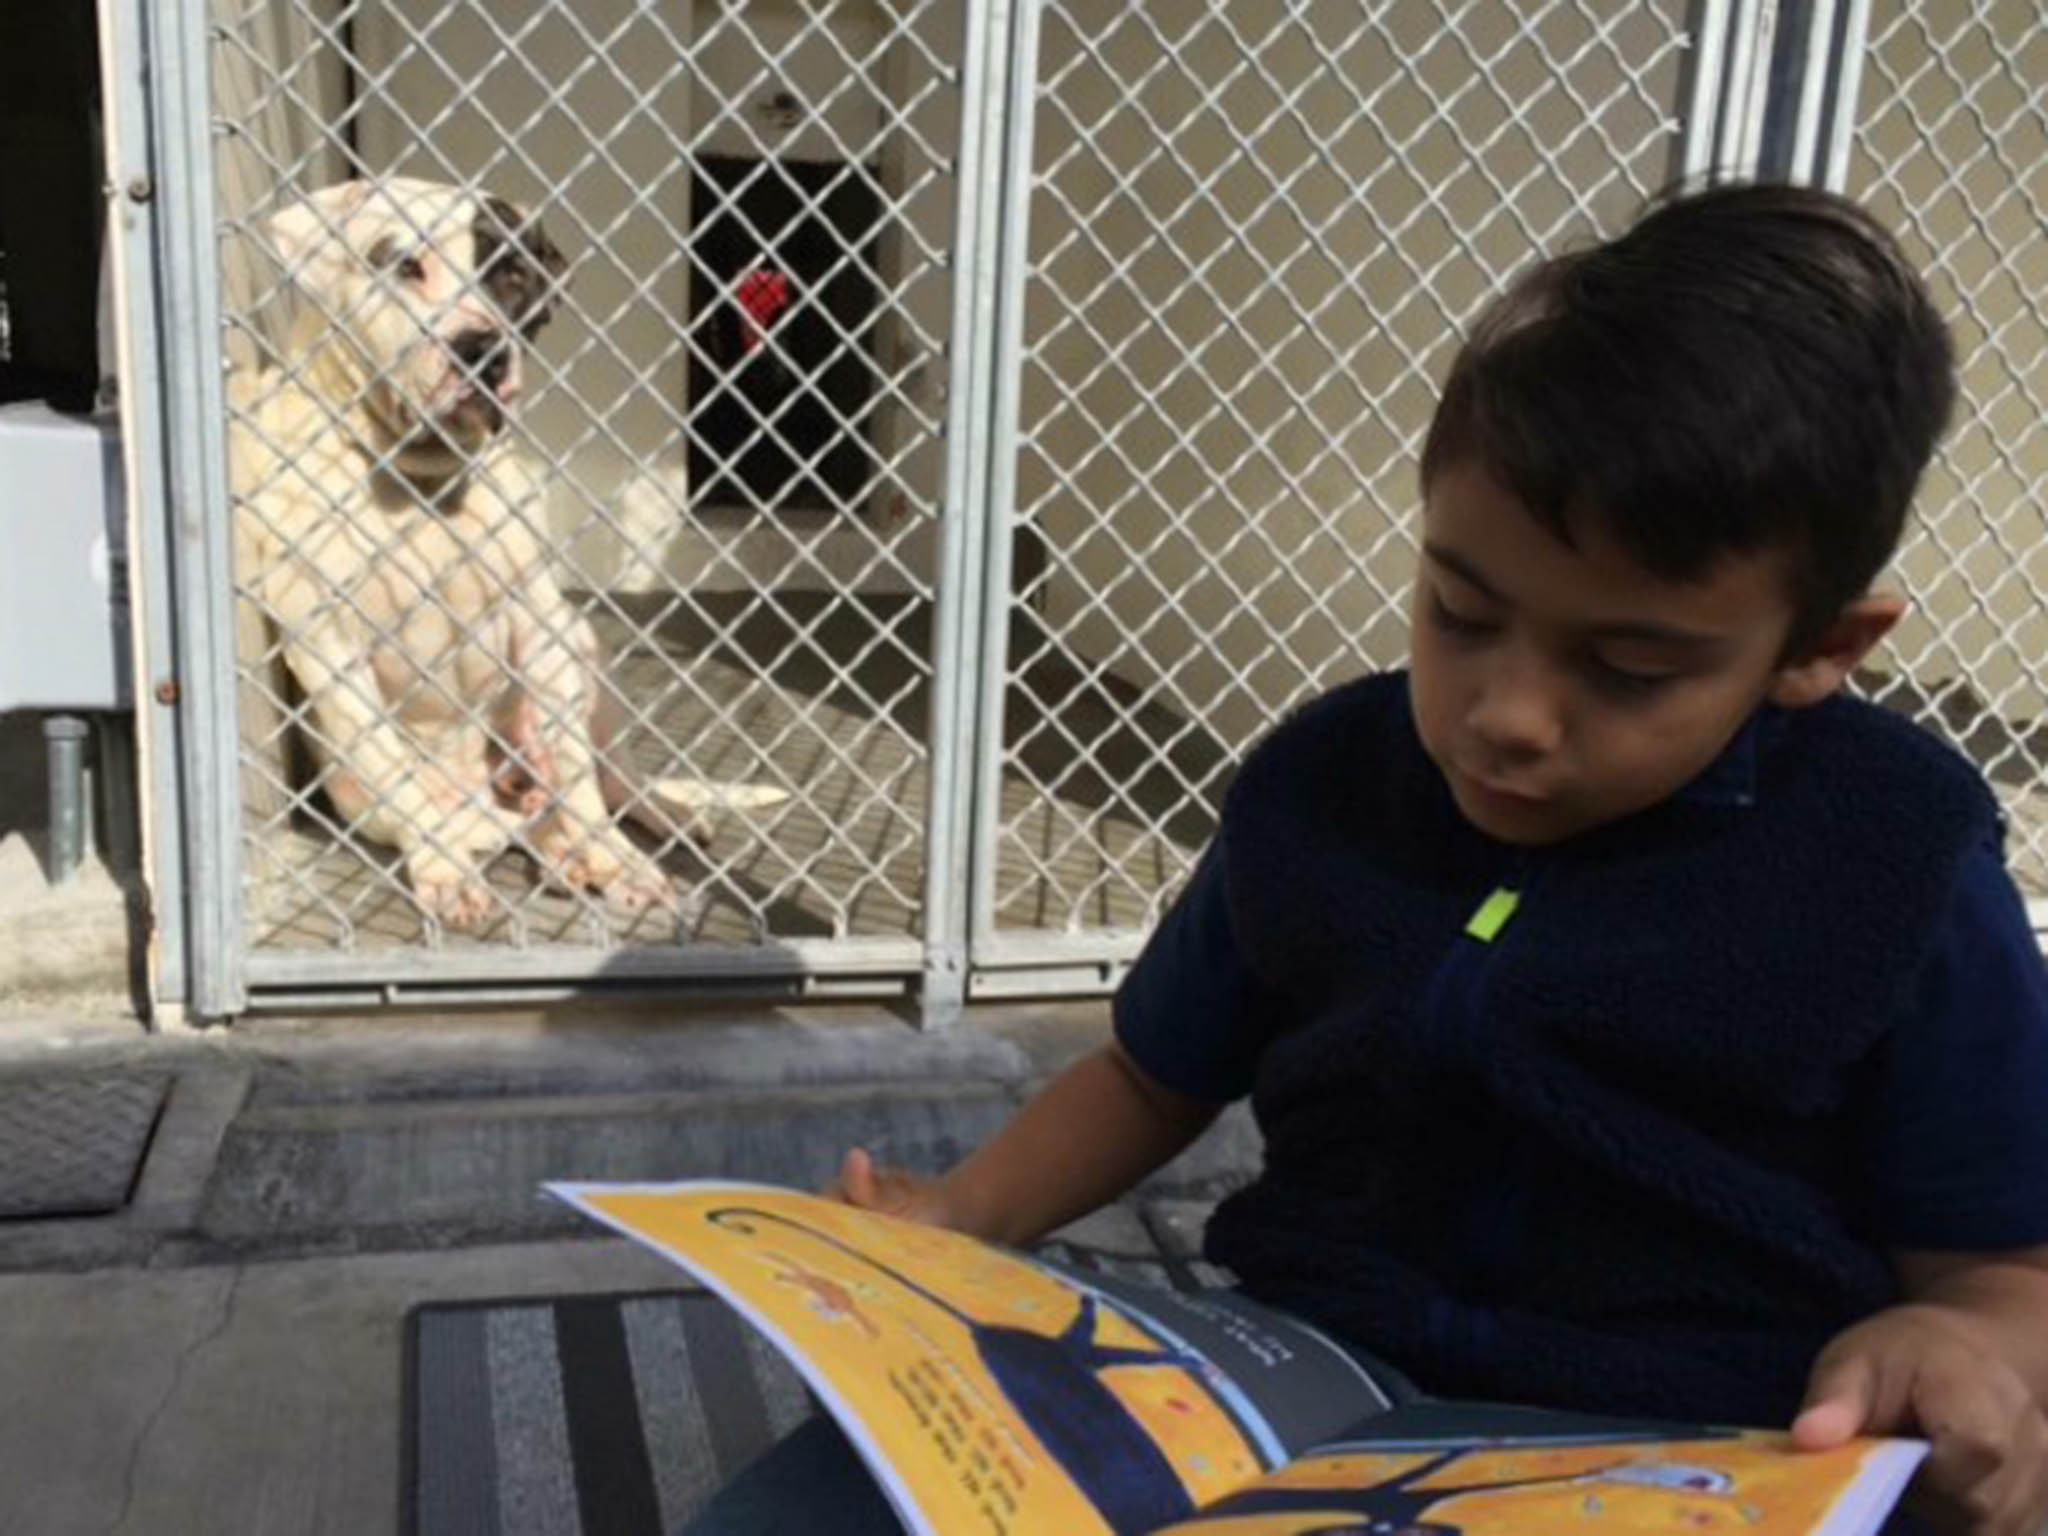 Boy with autism reads to rescue dogs to help them find a new home